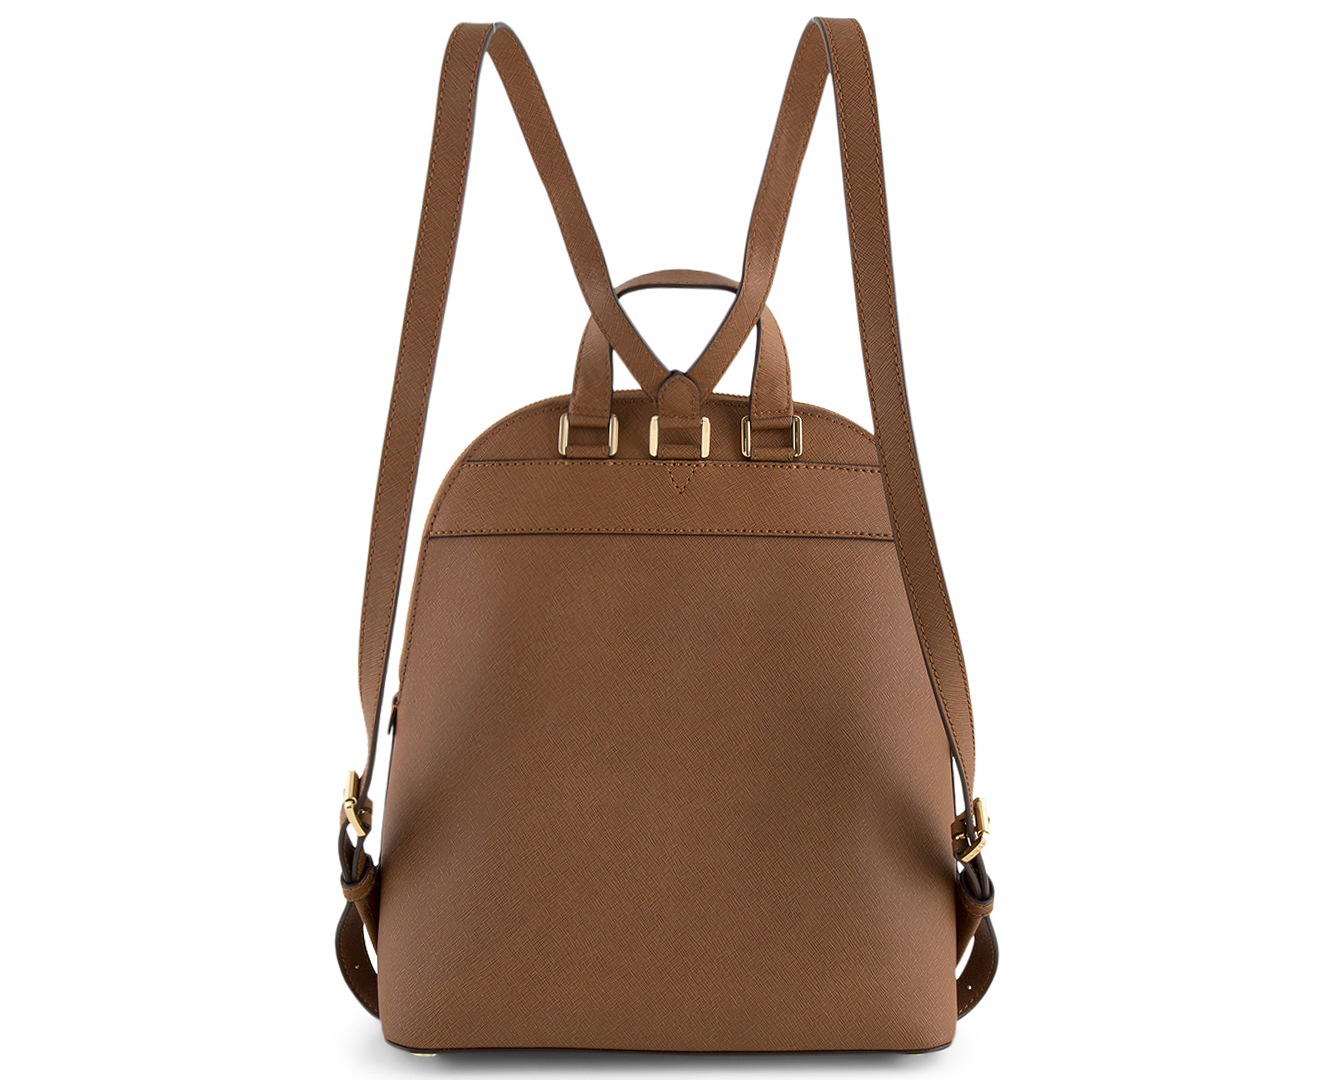 2b31f992ec49 Michael Kors Large Emmy Backpack - Luggage | Catch.com.au